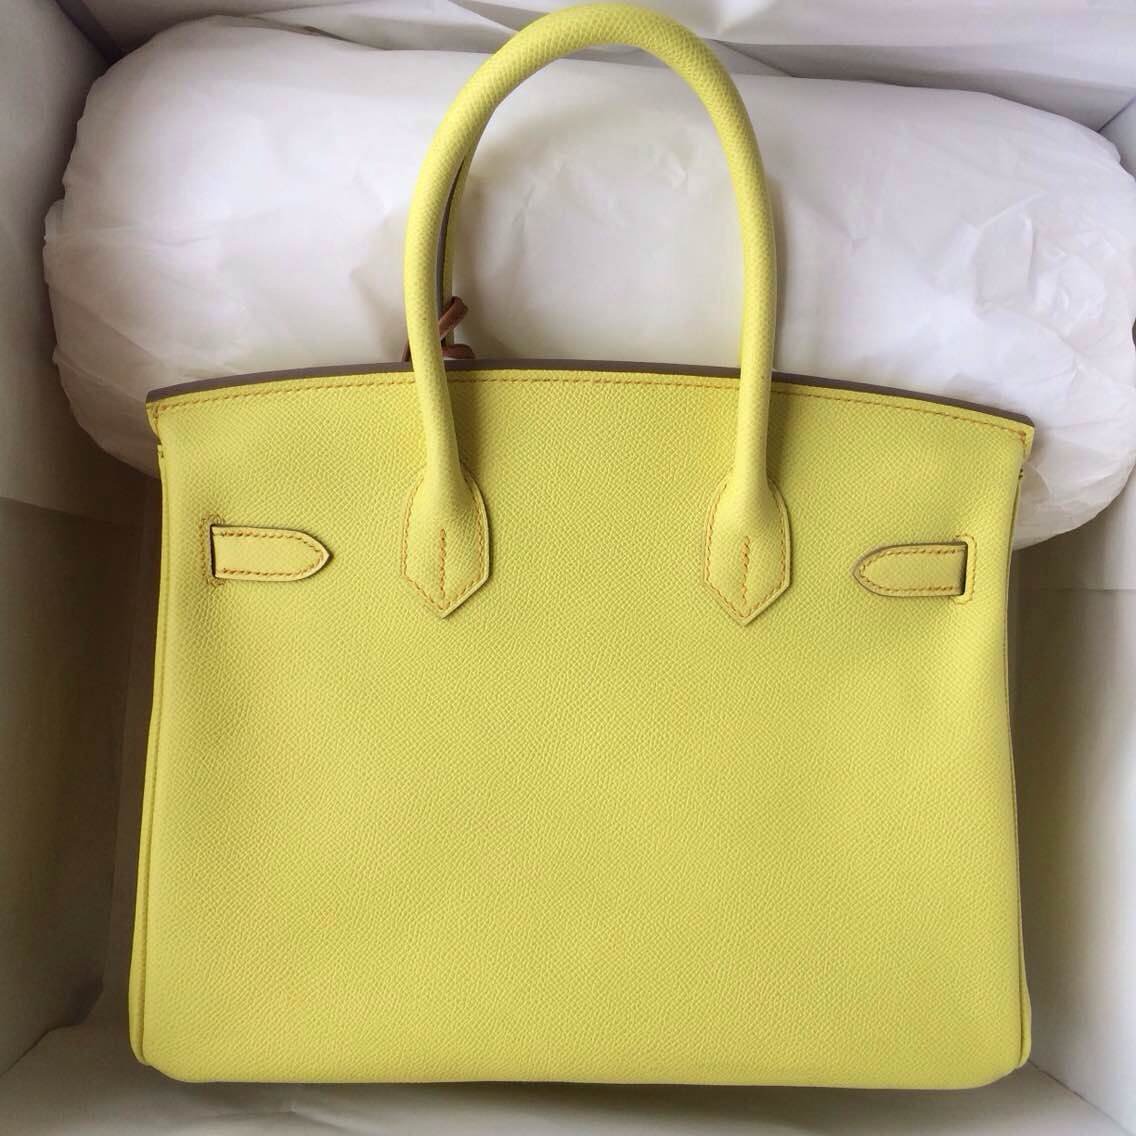 30cm Birkin Bag C9 Lime Yellow France Epsom Leather Gold Hardware